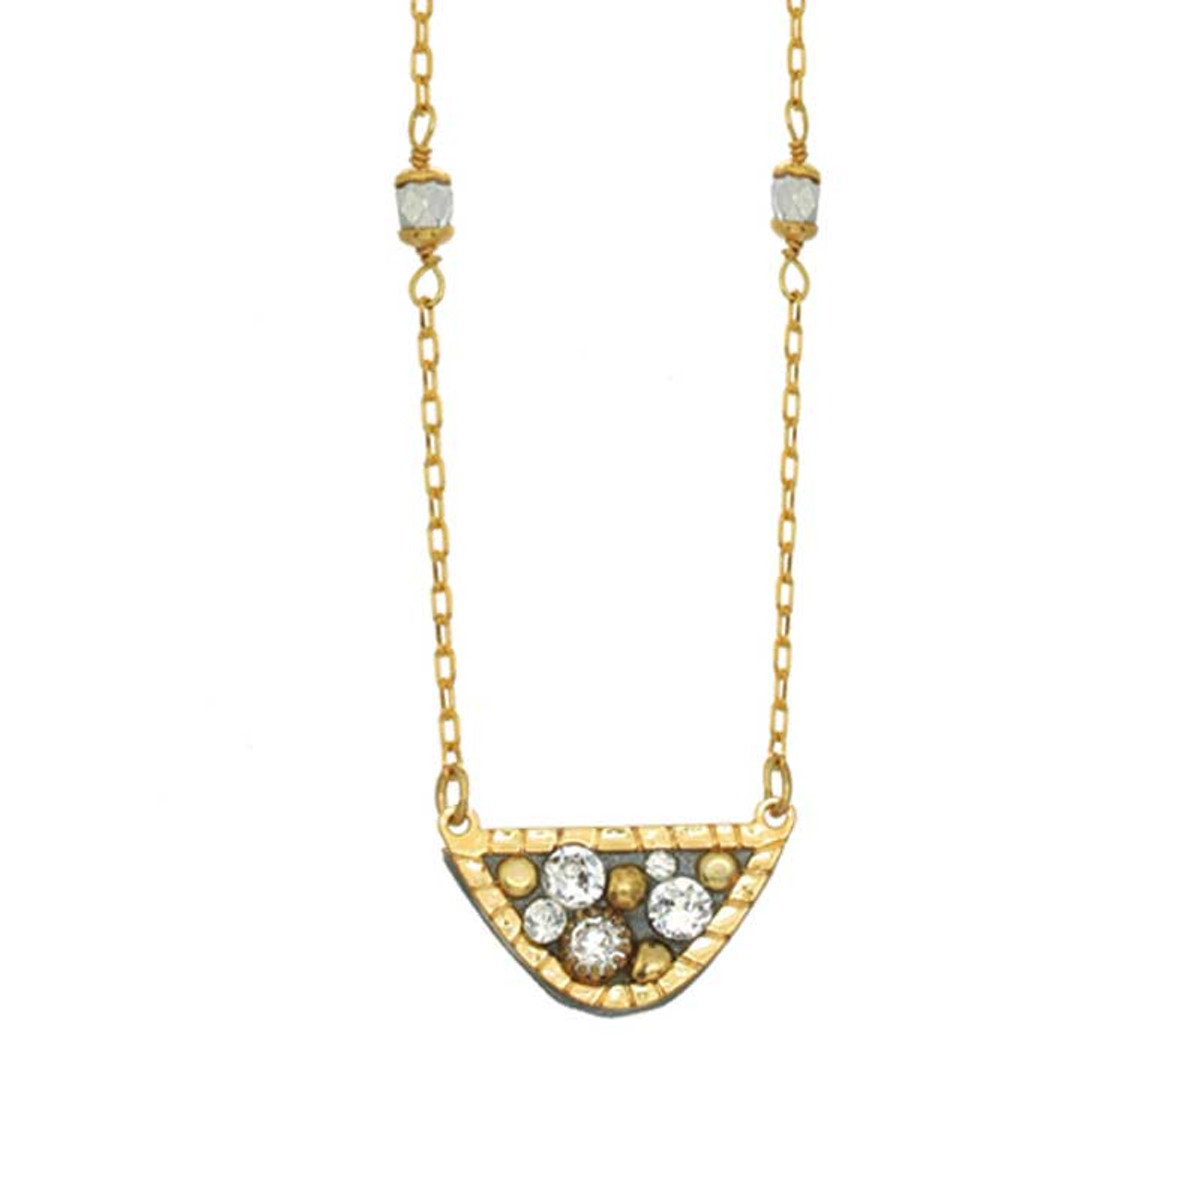 Gold Icicle necklaces from Michal Golan Jewelry